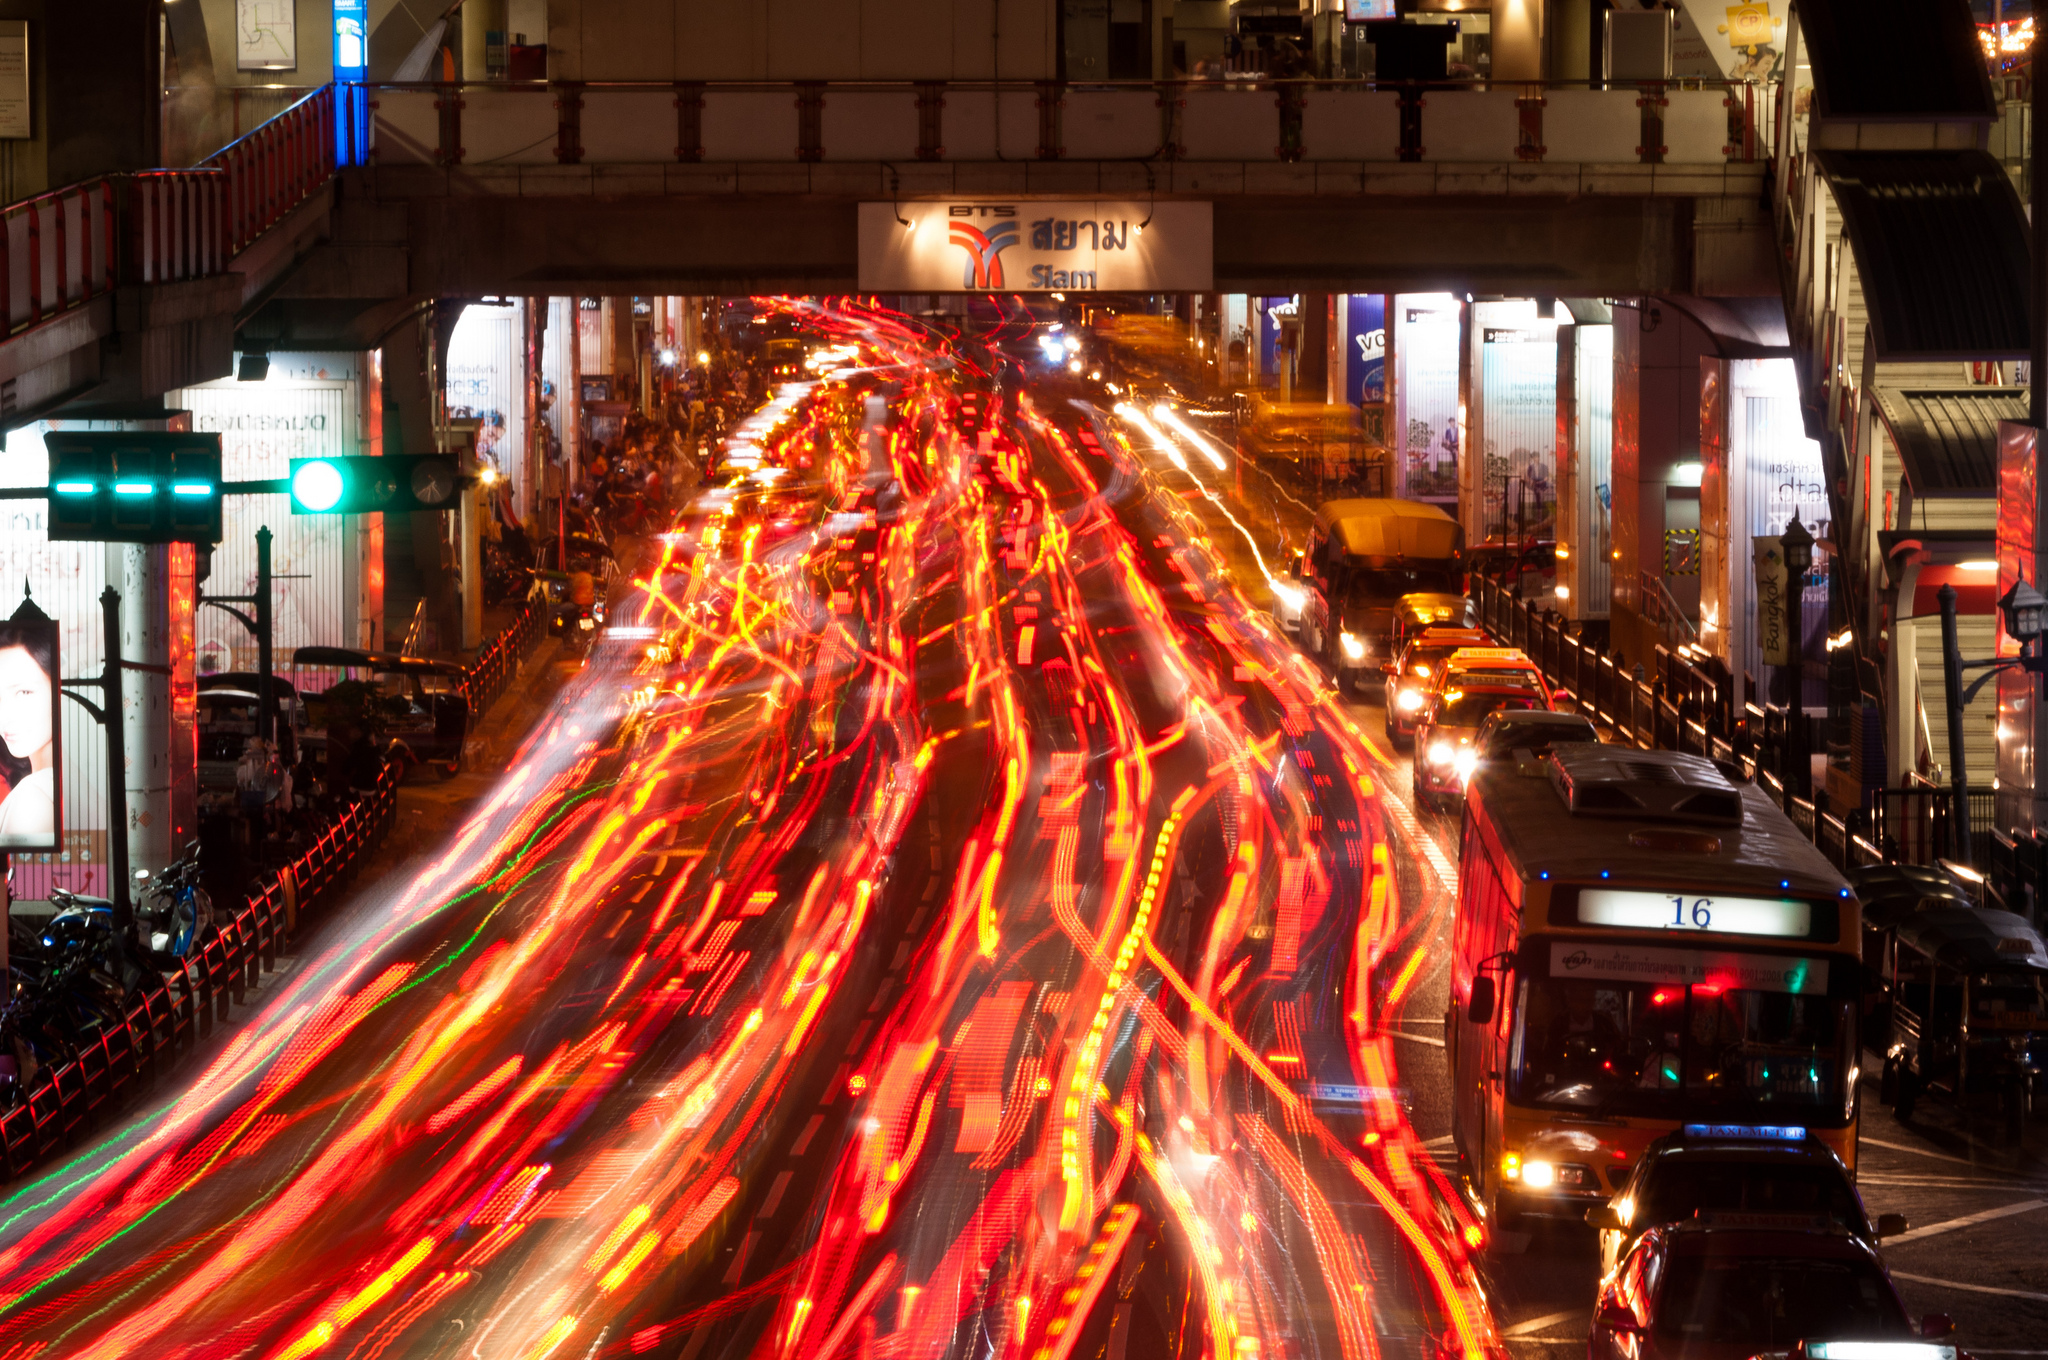 Sunday evening traffic in Bangkok's Siam Square area. Image credit:Mark Fischer